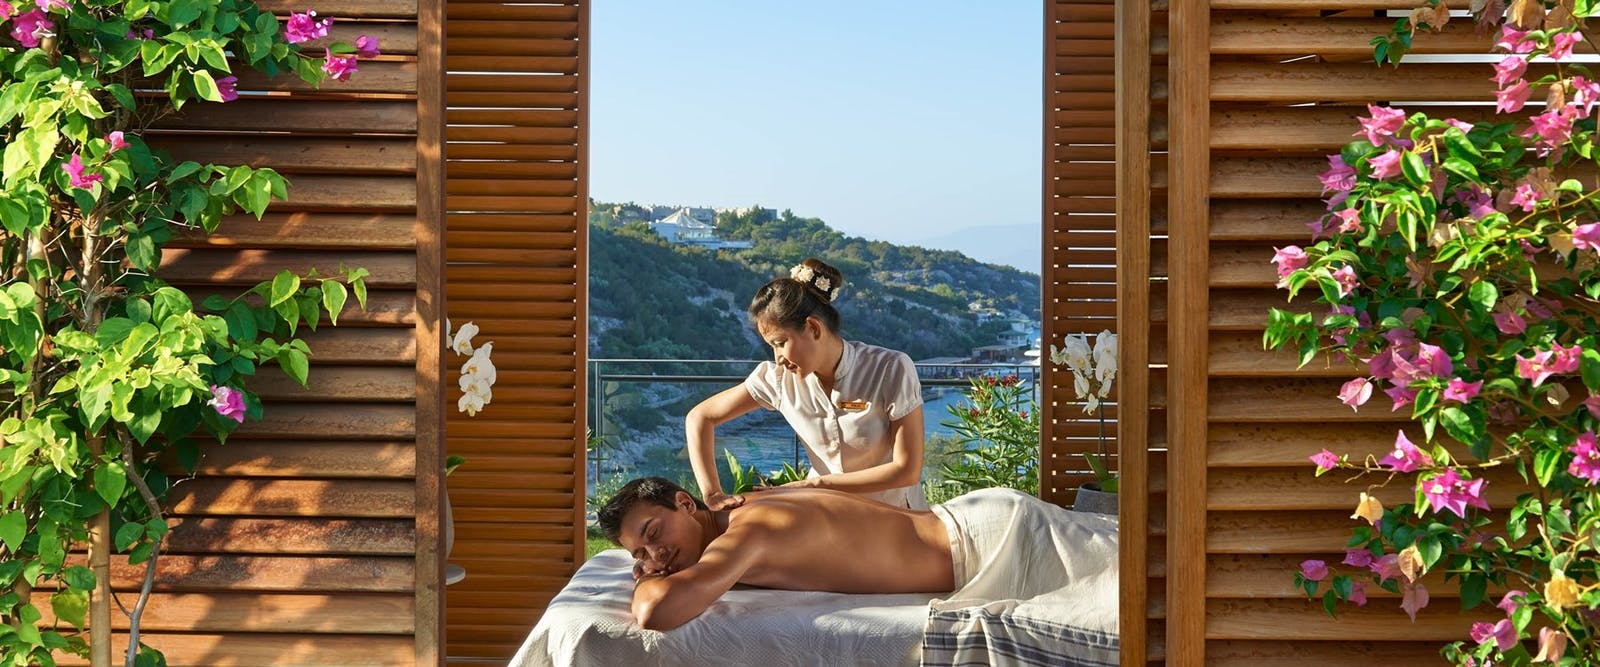 Spa Cabana at Mandarin Oriental Bodrum, Turkey